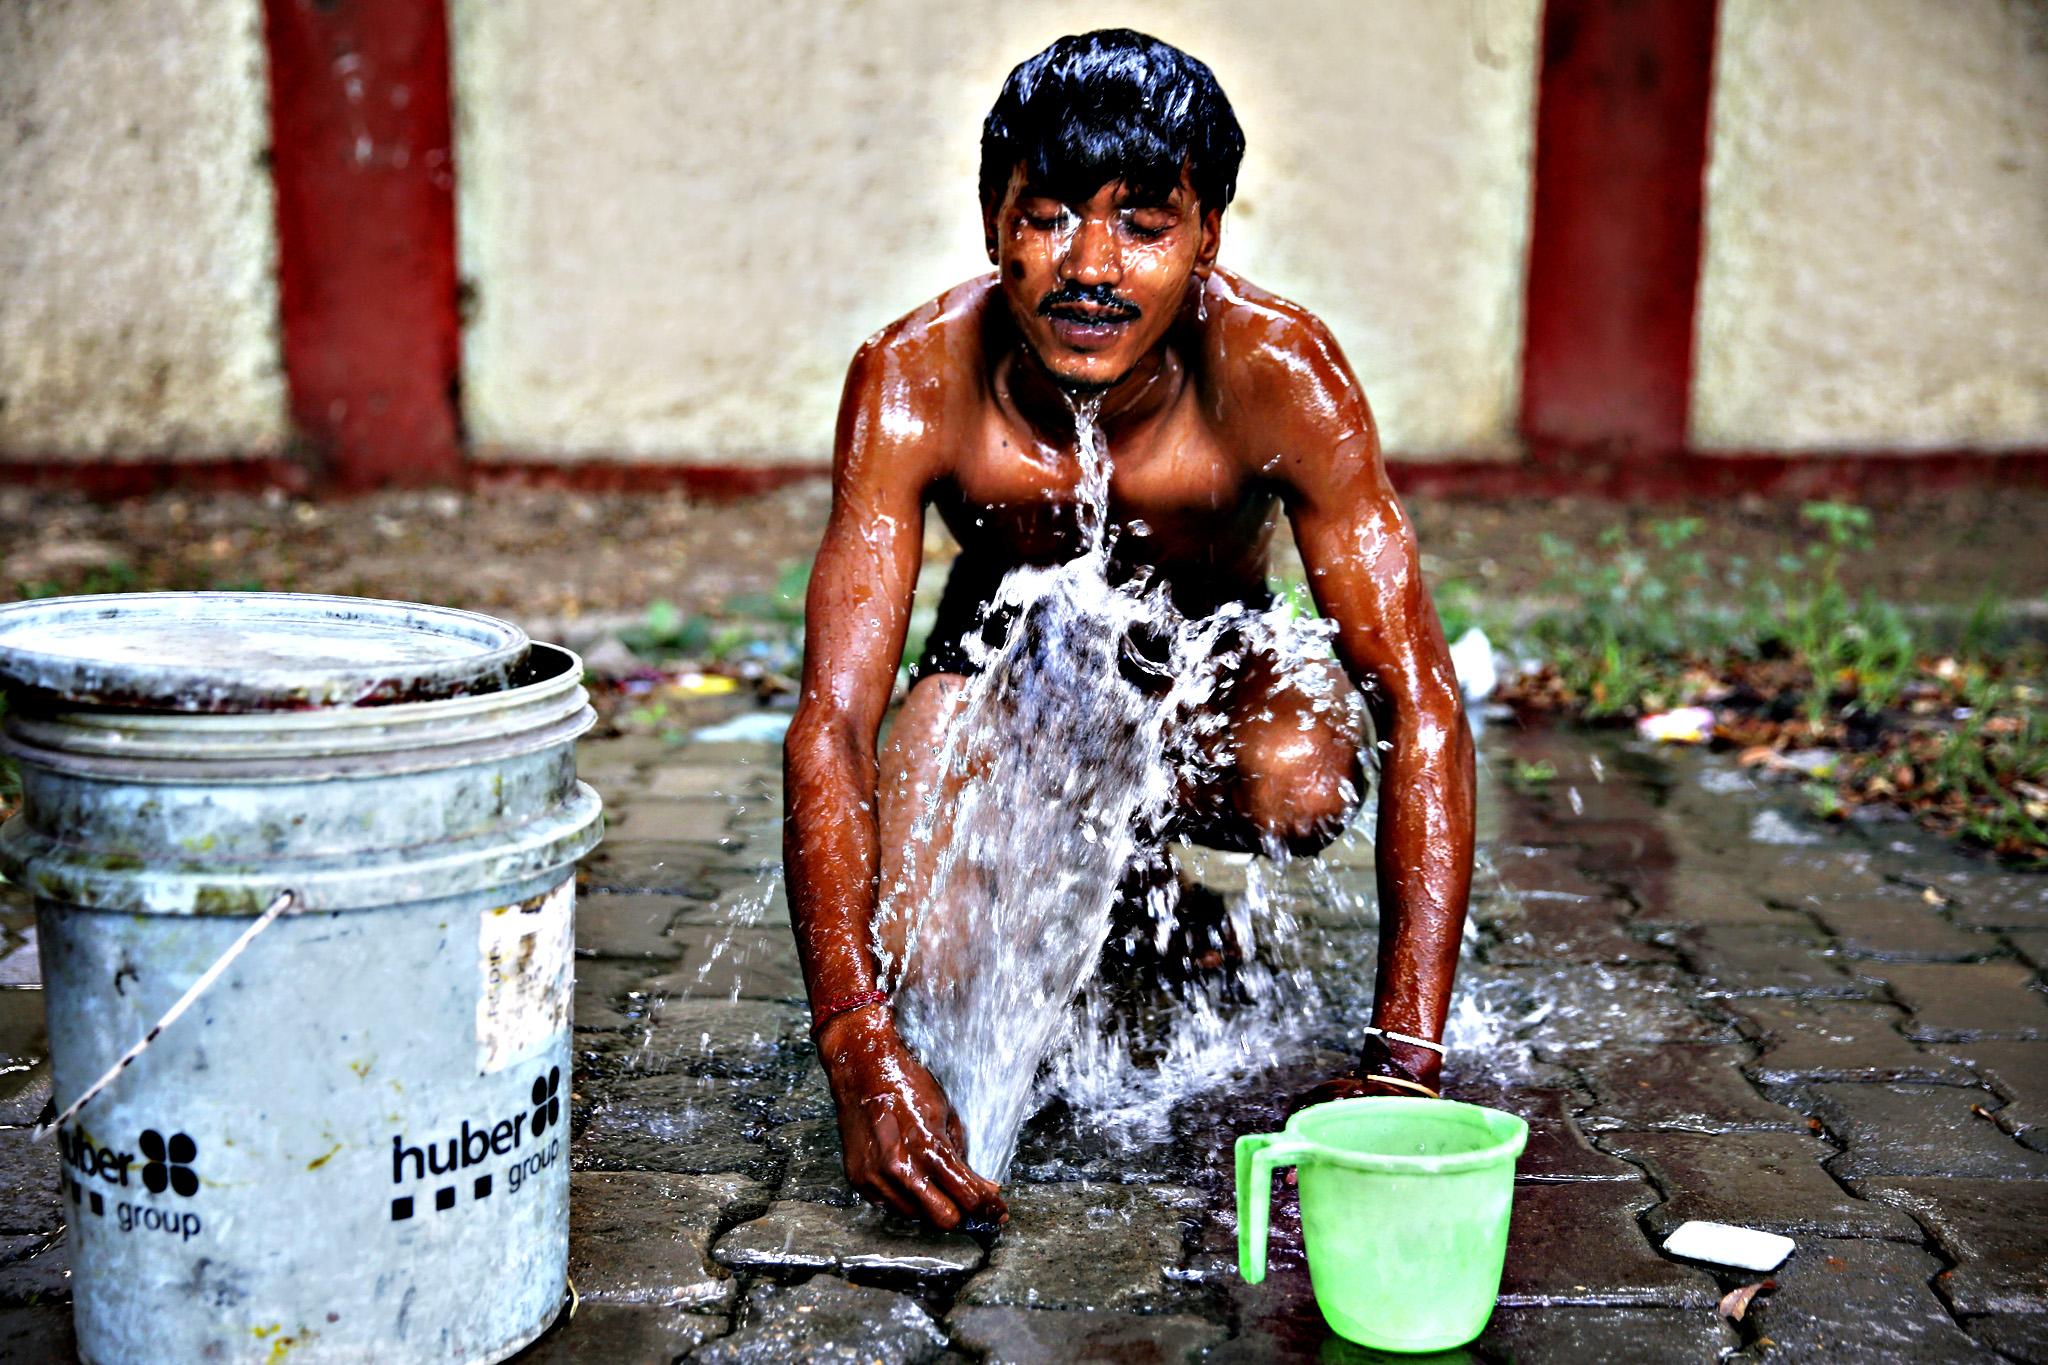 An Indian rickshaw driver takes bath using water from a leaking pipe as it flows through a drain beneath on a hot summer morning in Allahabad, India, Thursday, June 11, 2015. India s northern state of Uttar Pradesh continued to reel under intense condition as heat waves prevailed in several parts of the state with temperatures recording 45 degrees Celsius (113 degrees Fahrenheit)